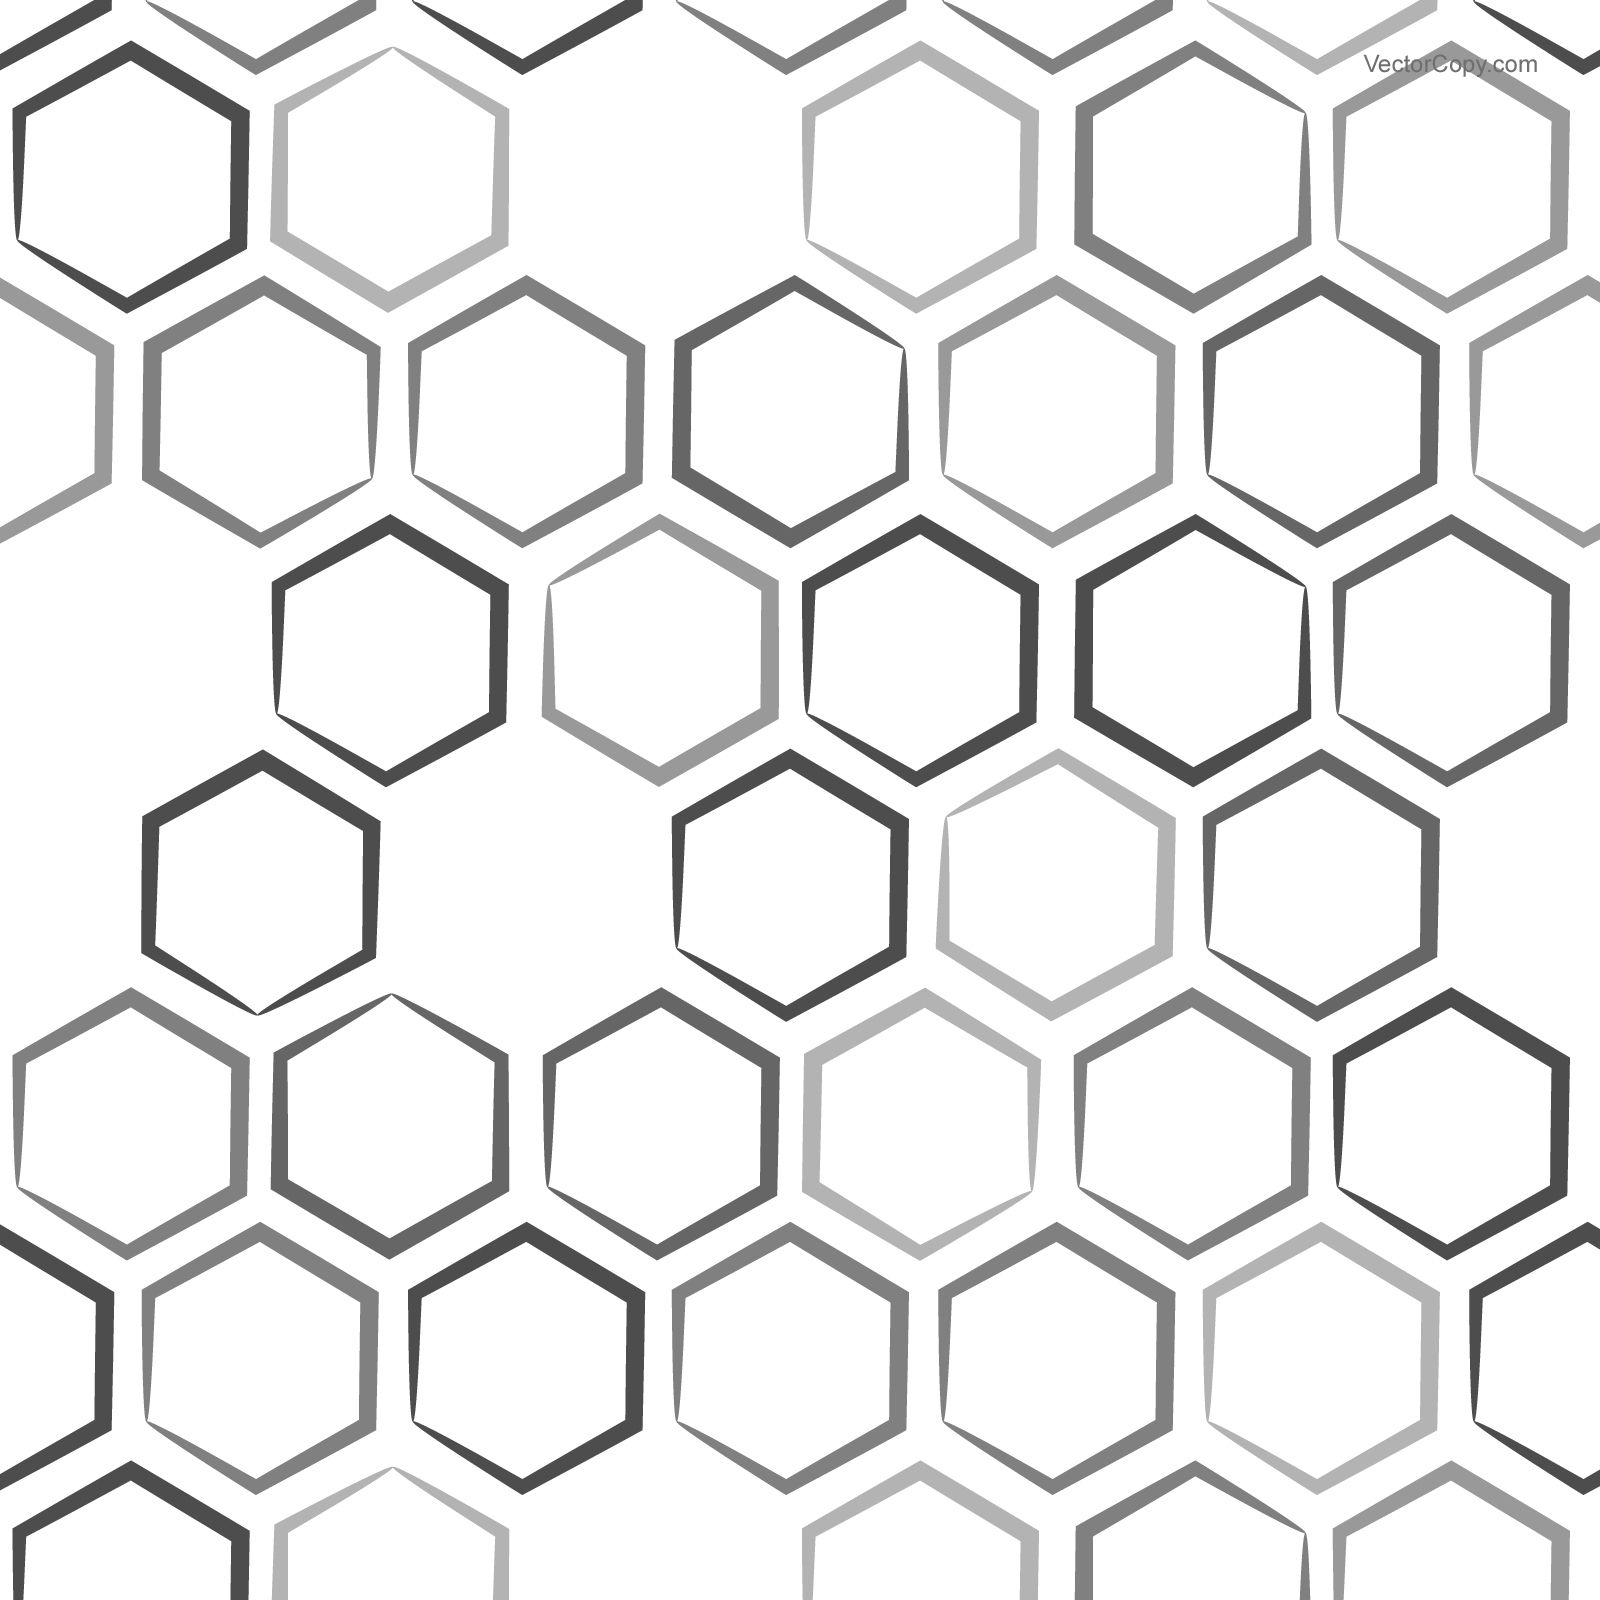 Hexagon Honeycomb Pattern Free Vector Eps By